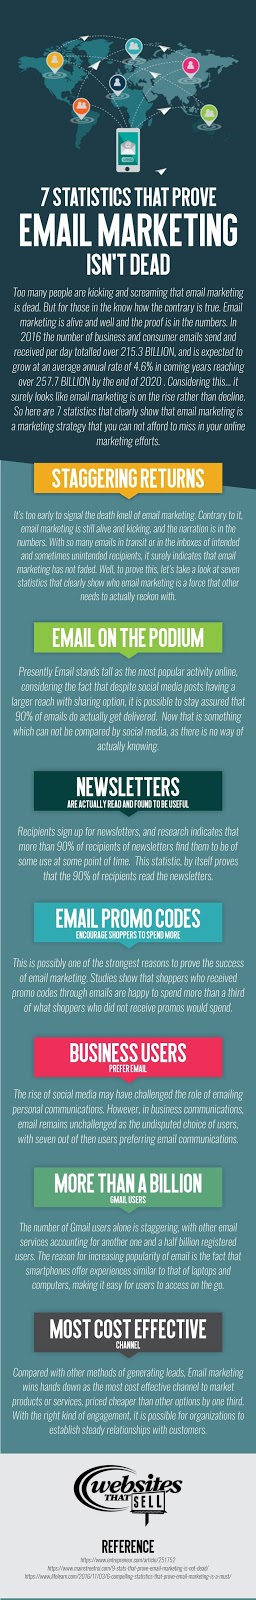 7 Statistics That Prove Email Marketing Isn't Dead : Infographic